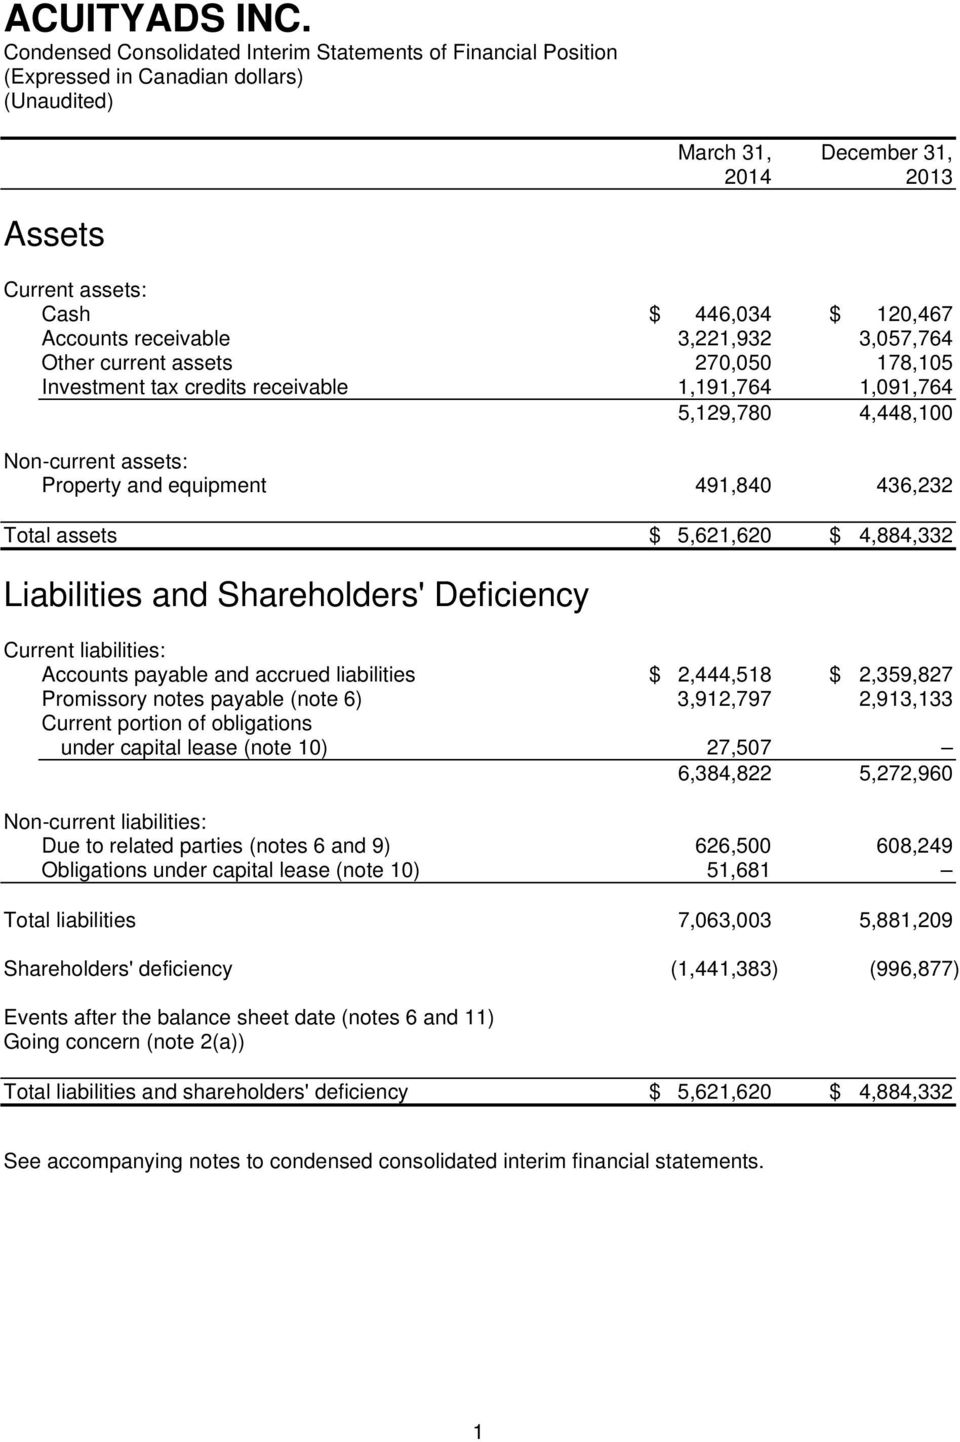 Liabilities and Shareholders' Deficiency Current liabilities: Accounts payable and accrued liabilities $ 2,444,518 $ 2,359,827 Promissory notes payable (note 6) 3,912,797 2,913,133 Current portion of